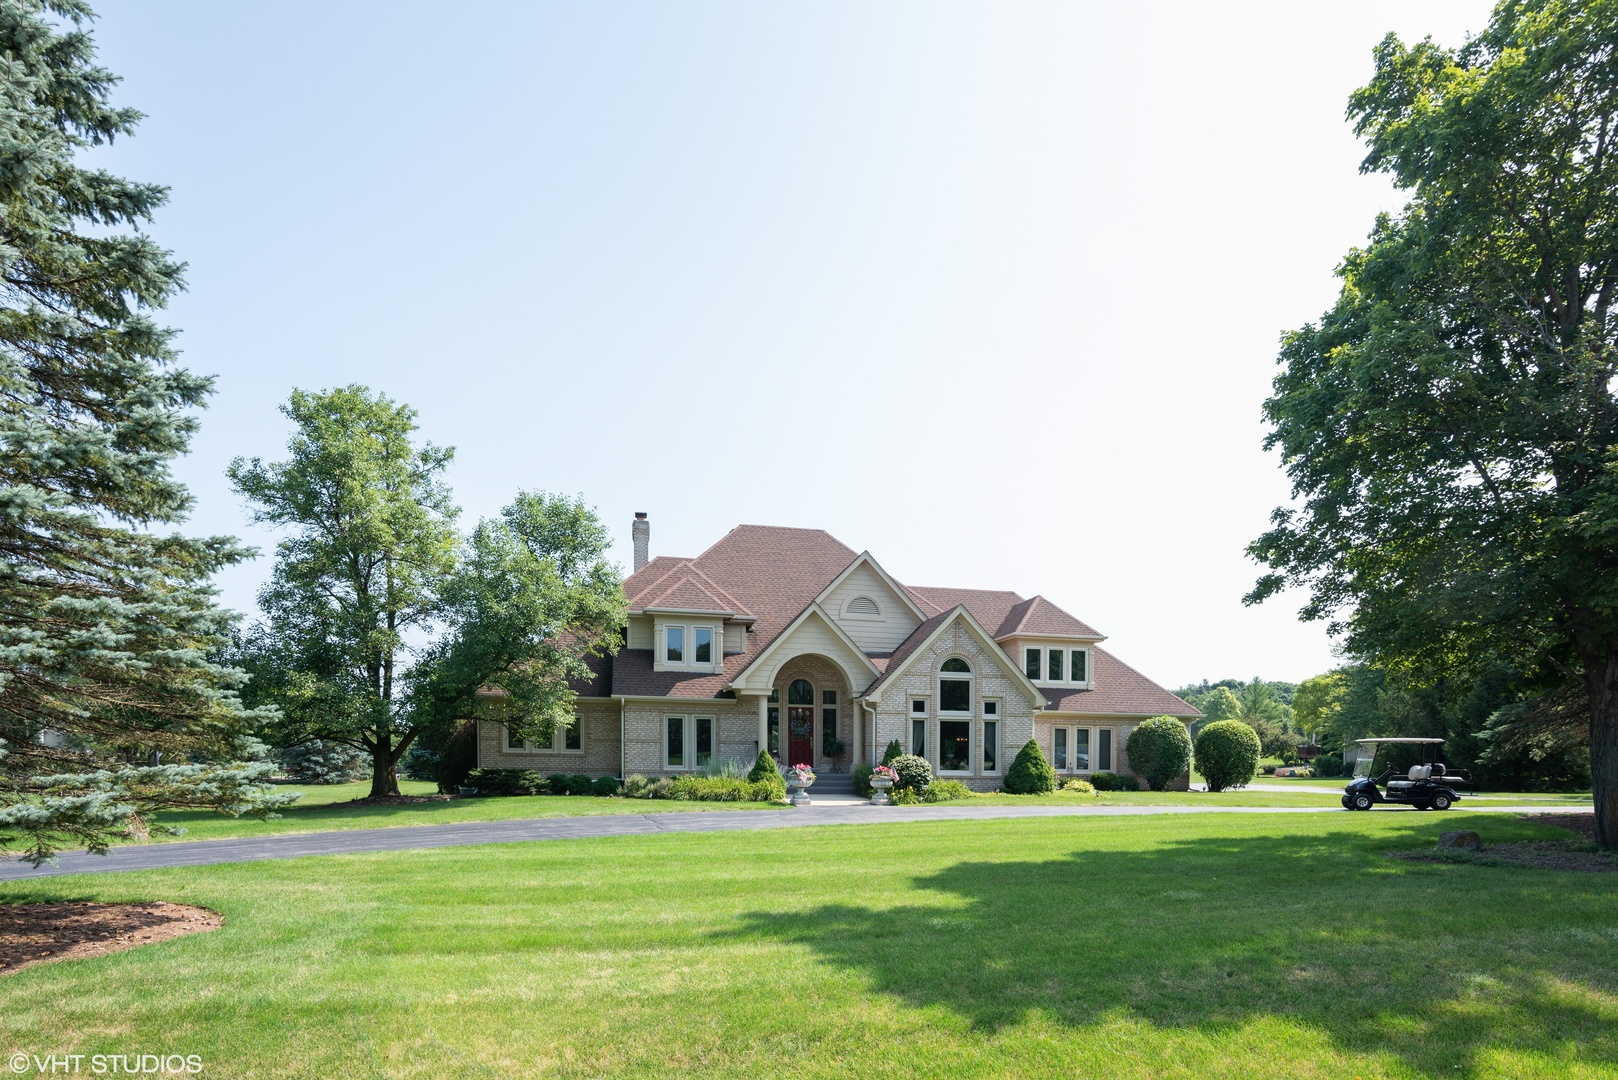 Photo for 37W654 Grey Barn Road, ST. CHARLES, IL 60174 (MLS # 10462892)